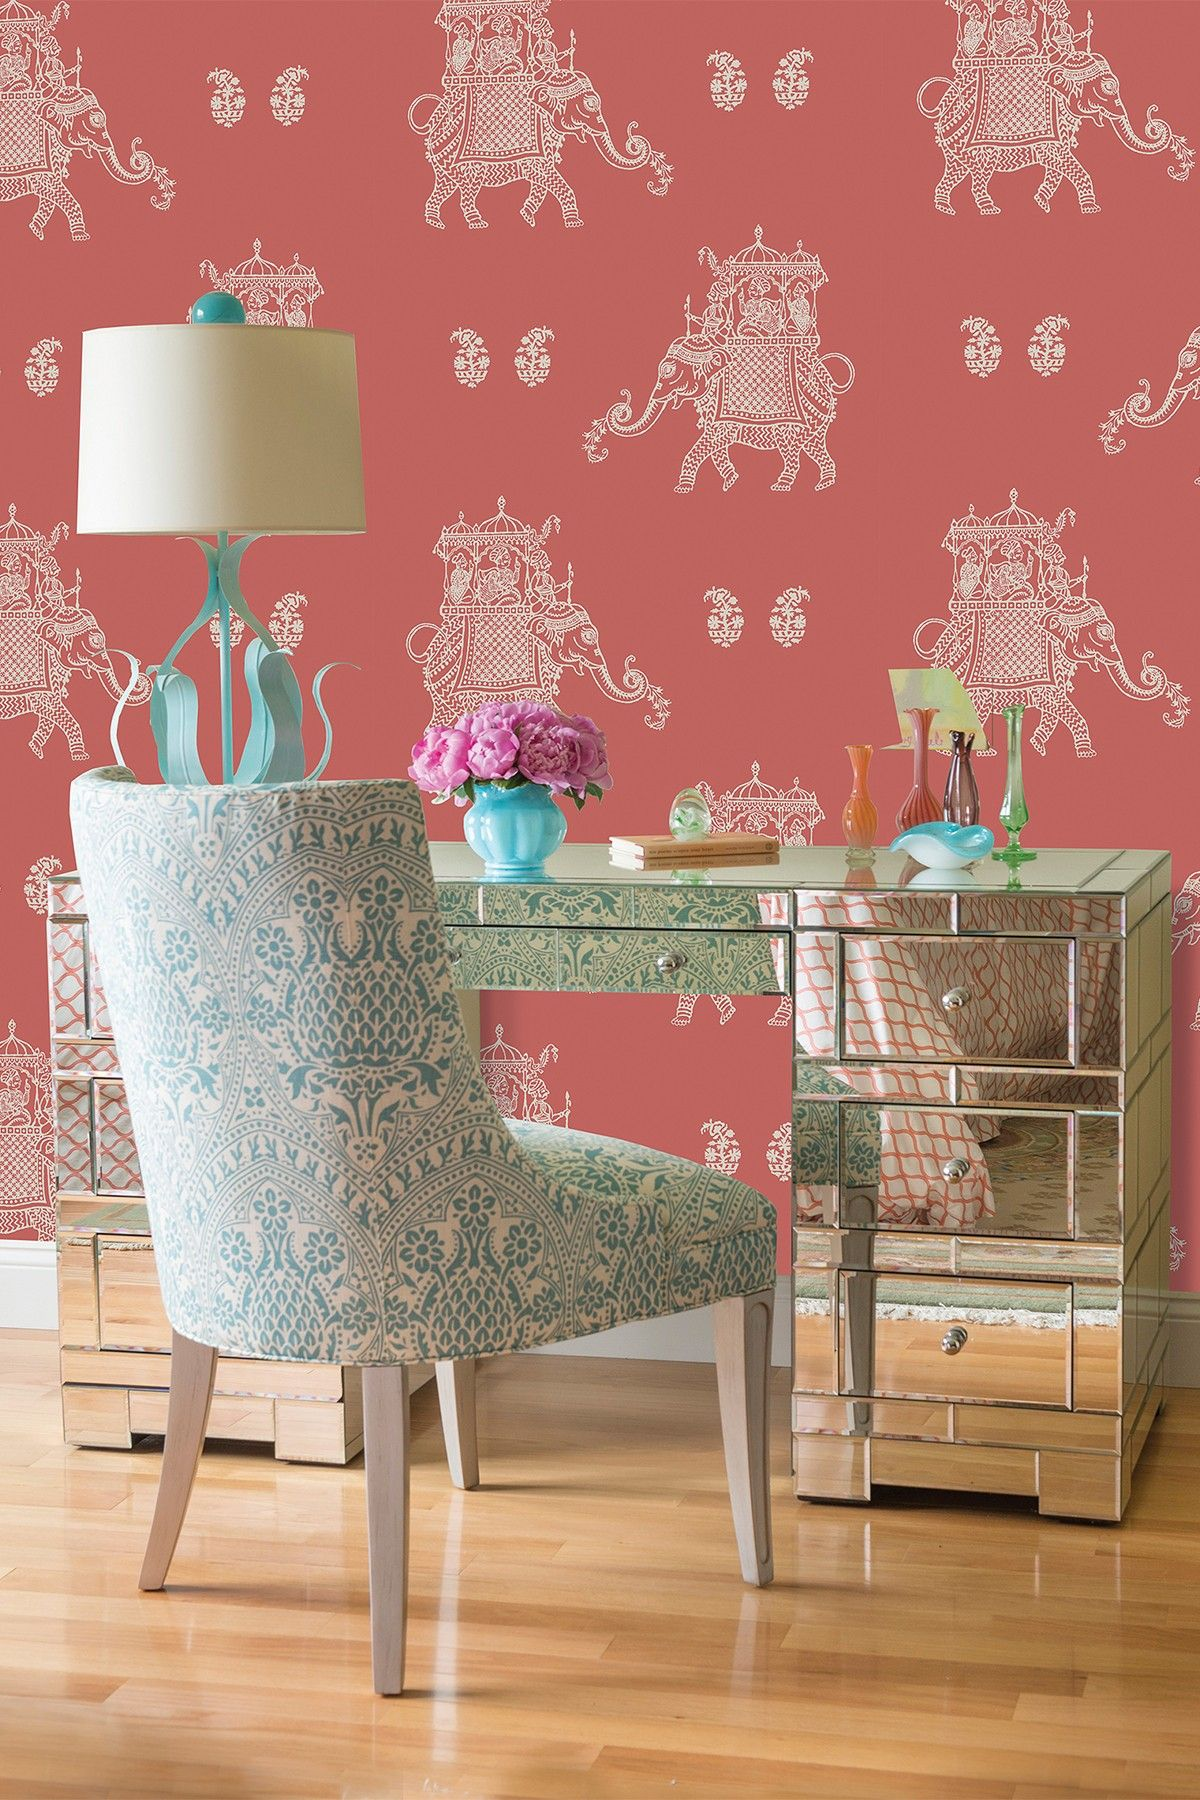 Brewster Home Fashions Caravan Peel and Stick Wallpaper